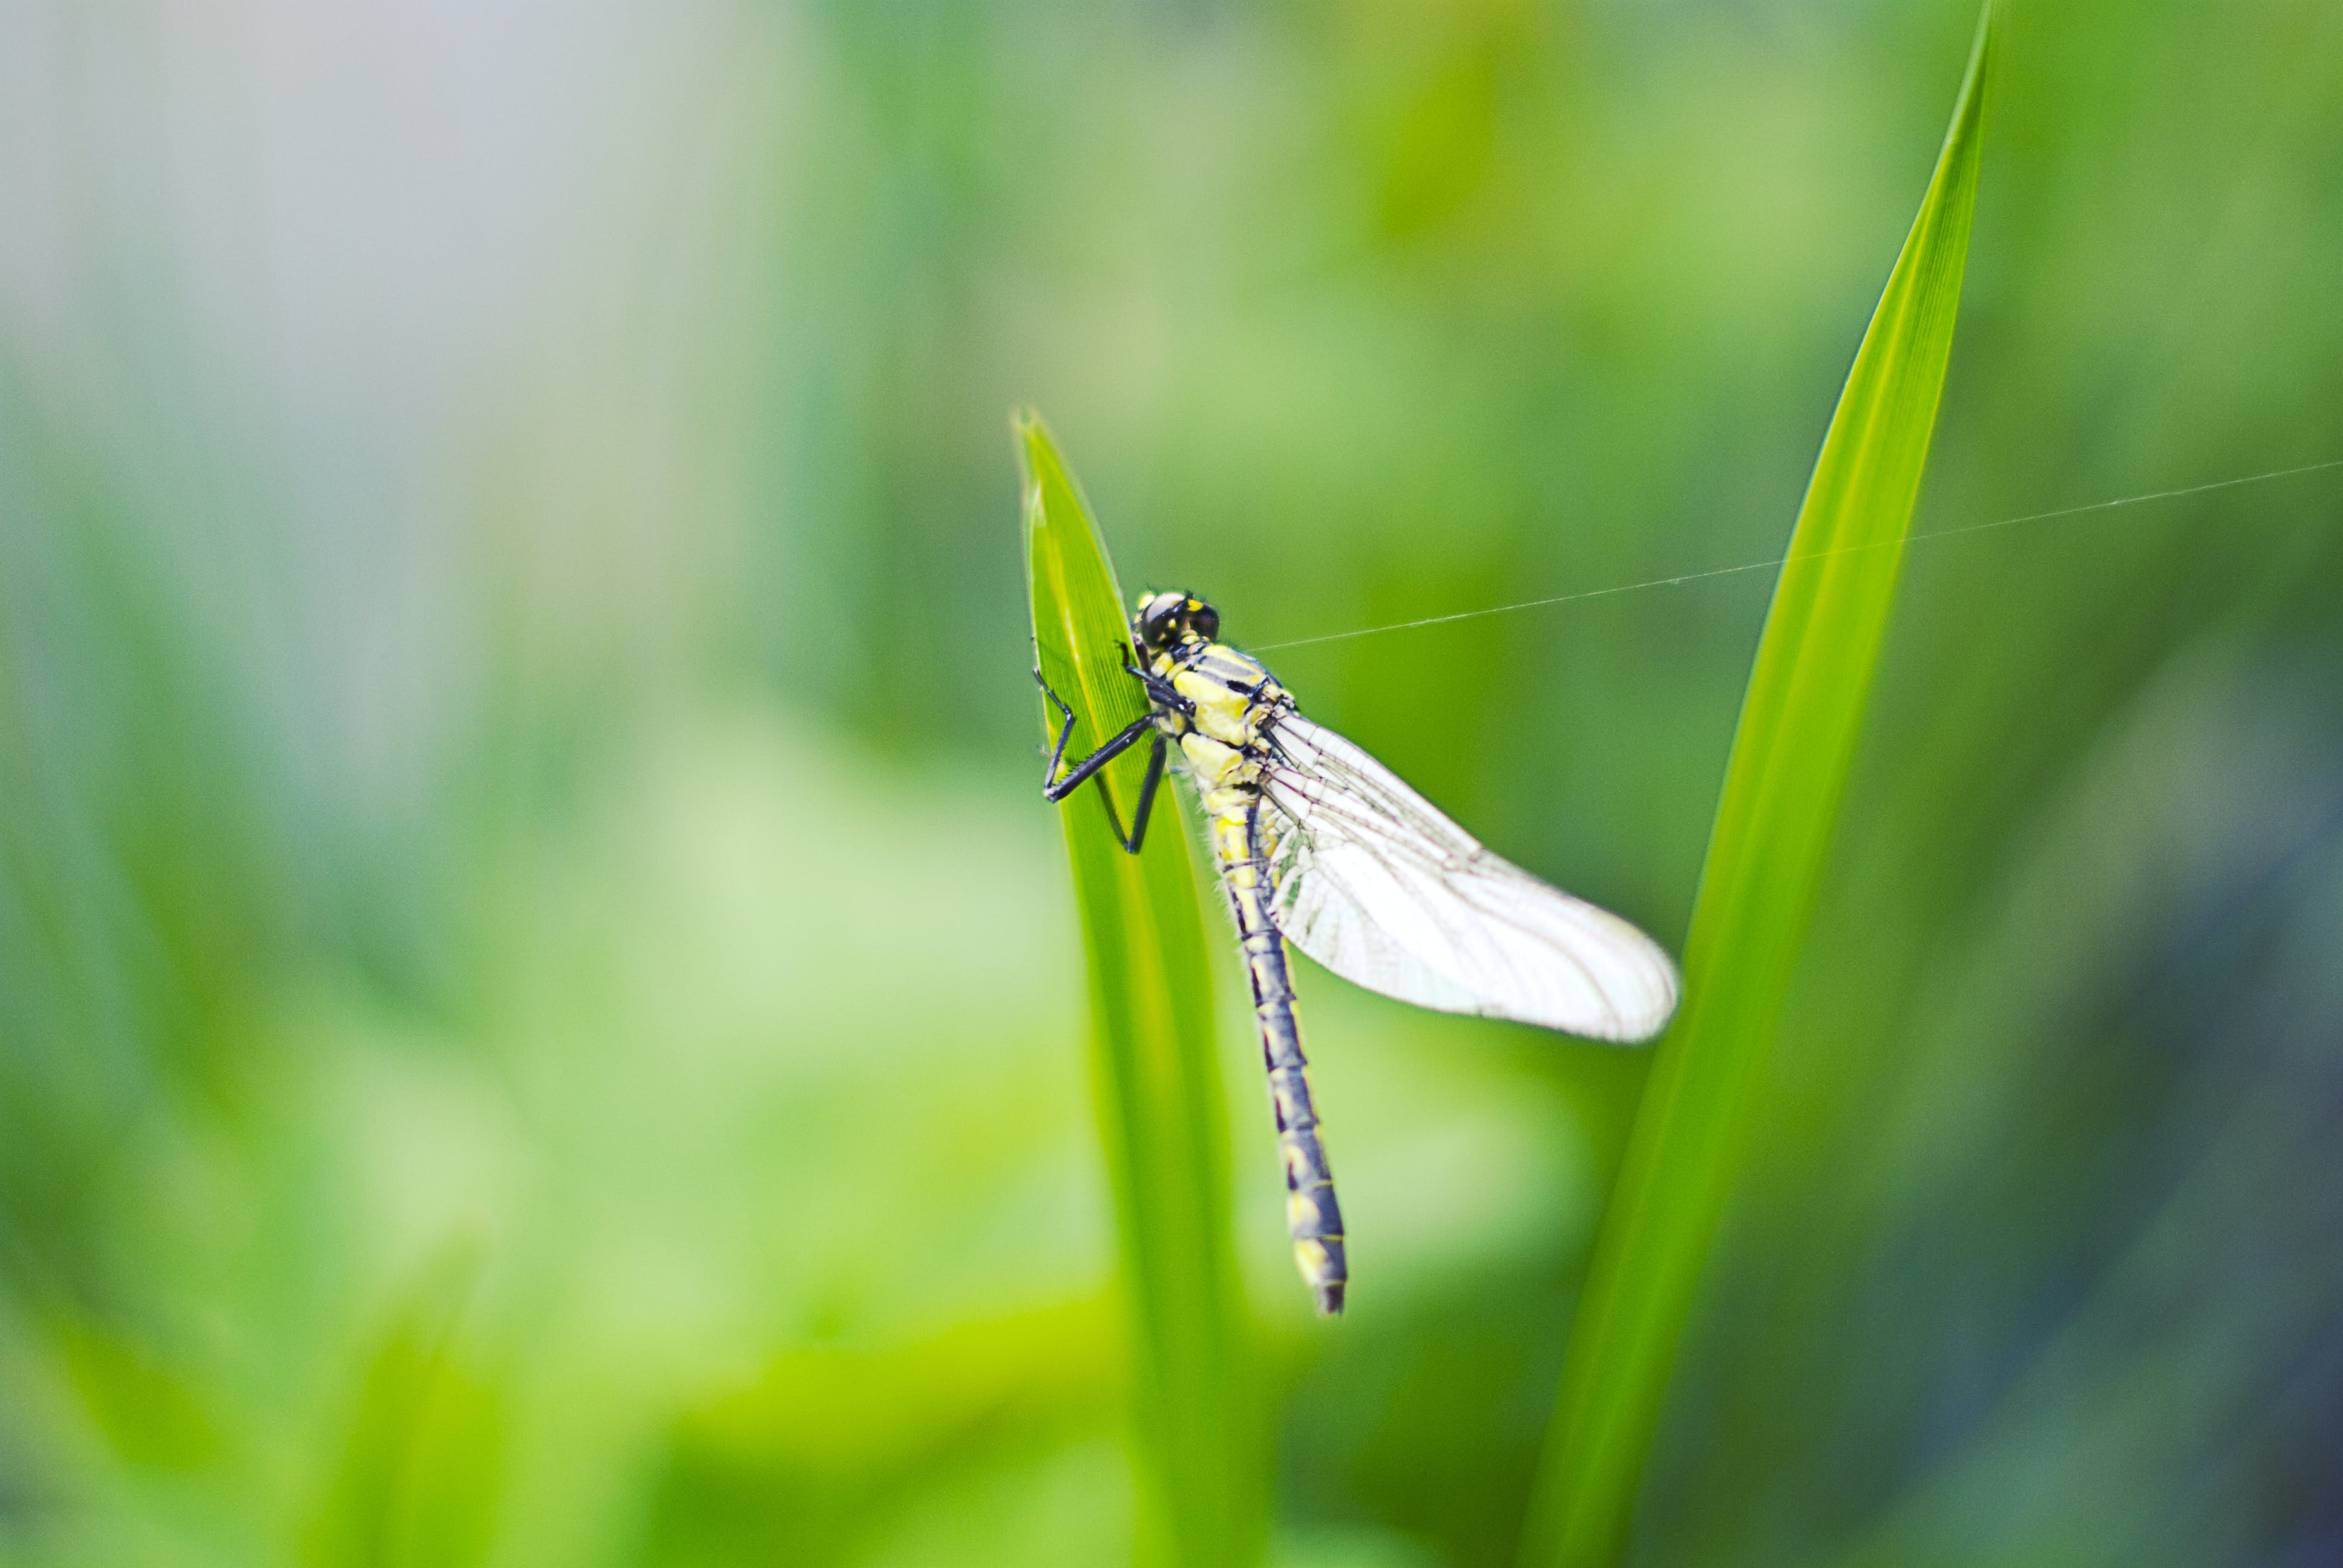 closeup, dragonfly, insect